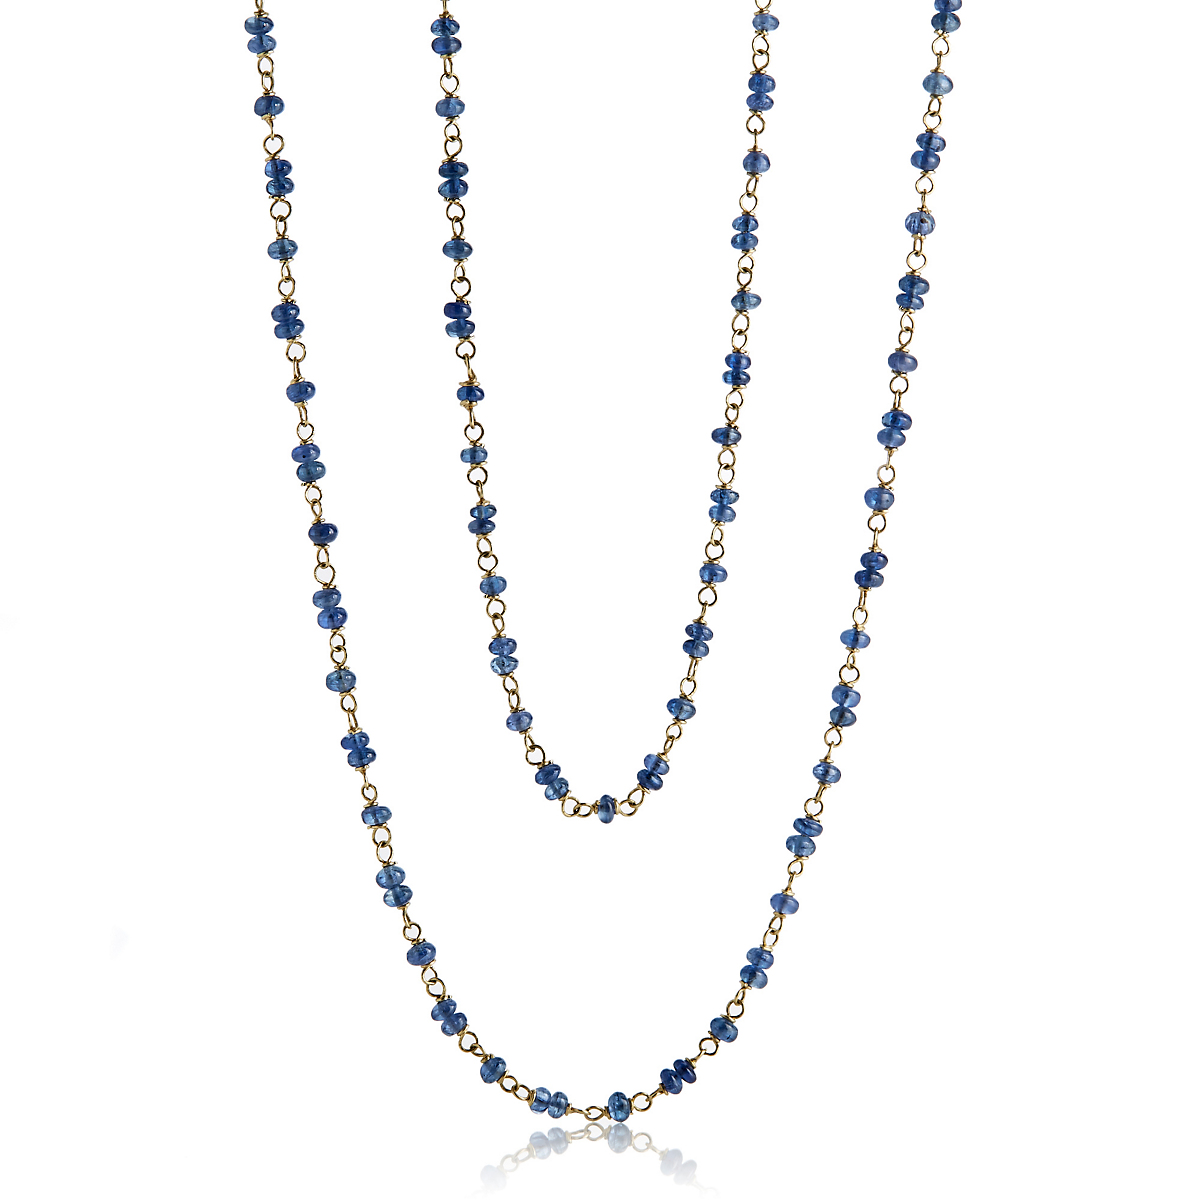 Adel Chefridi Sapphire Beads & Gold Necklace